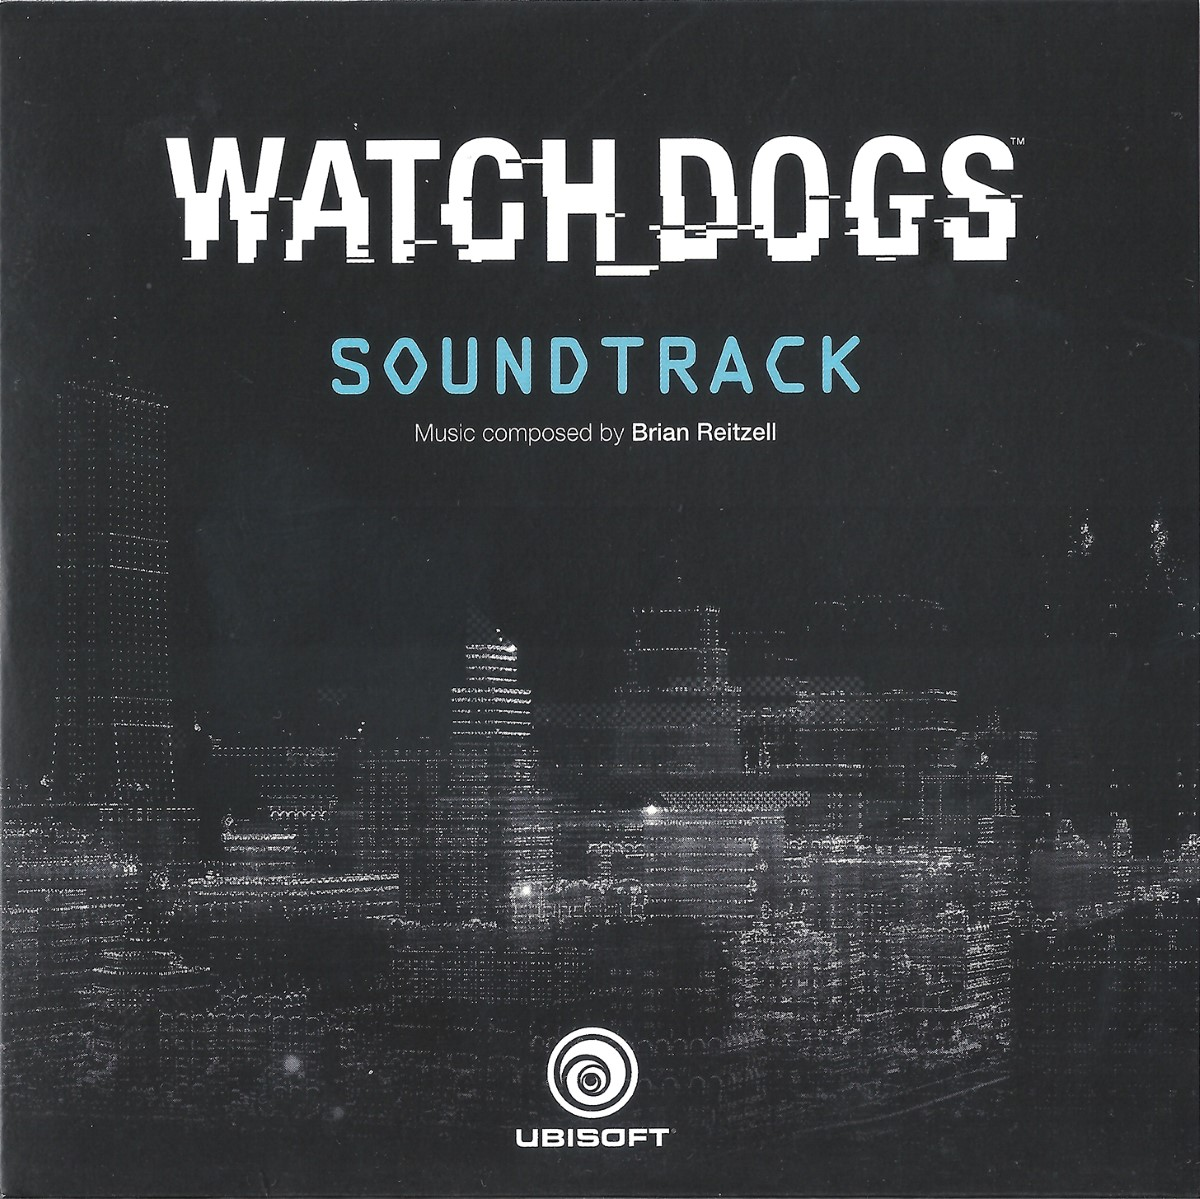 [140527]Watch_Dogs Soundtrack [FLAC+BK]